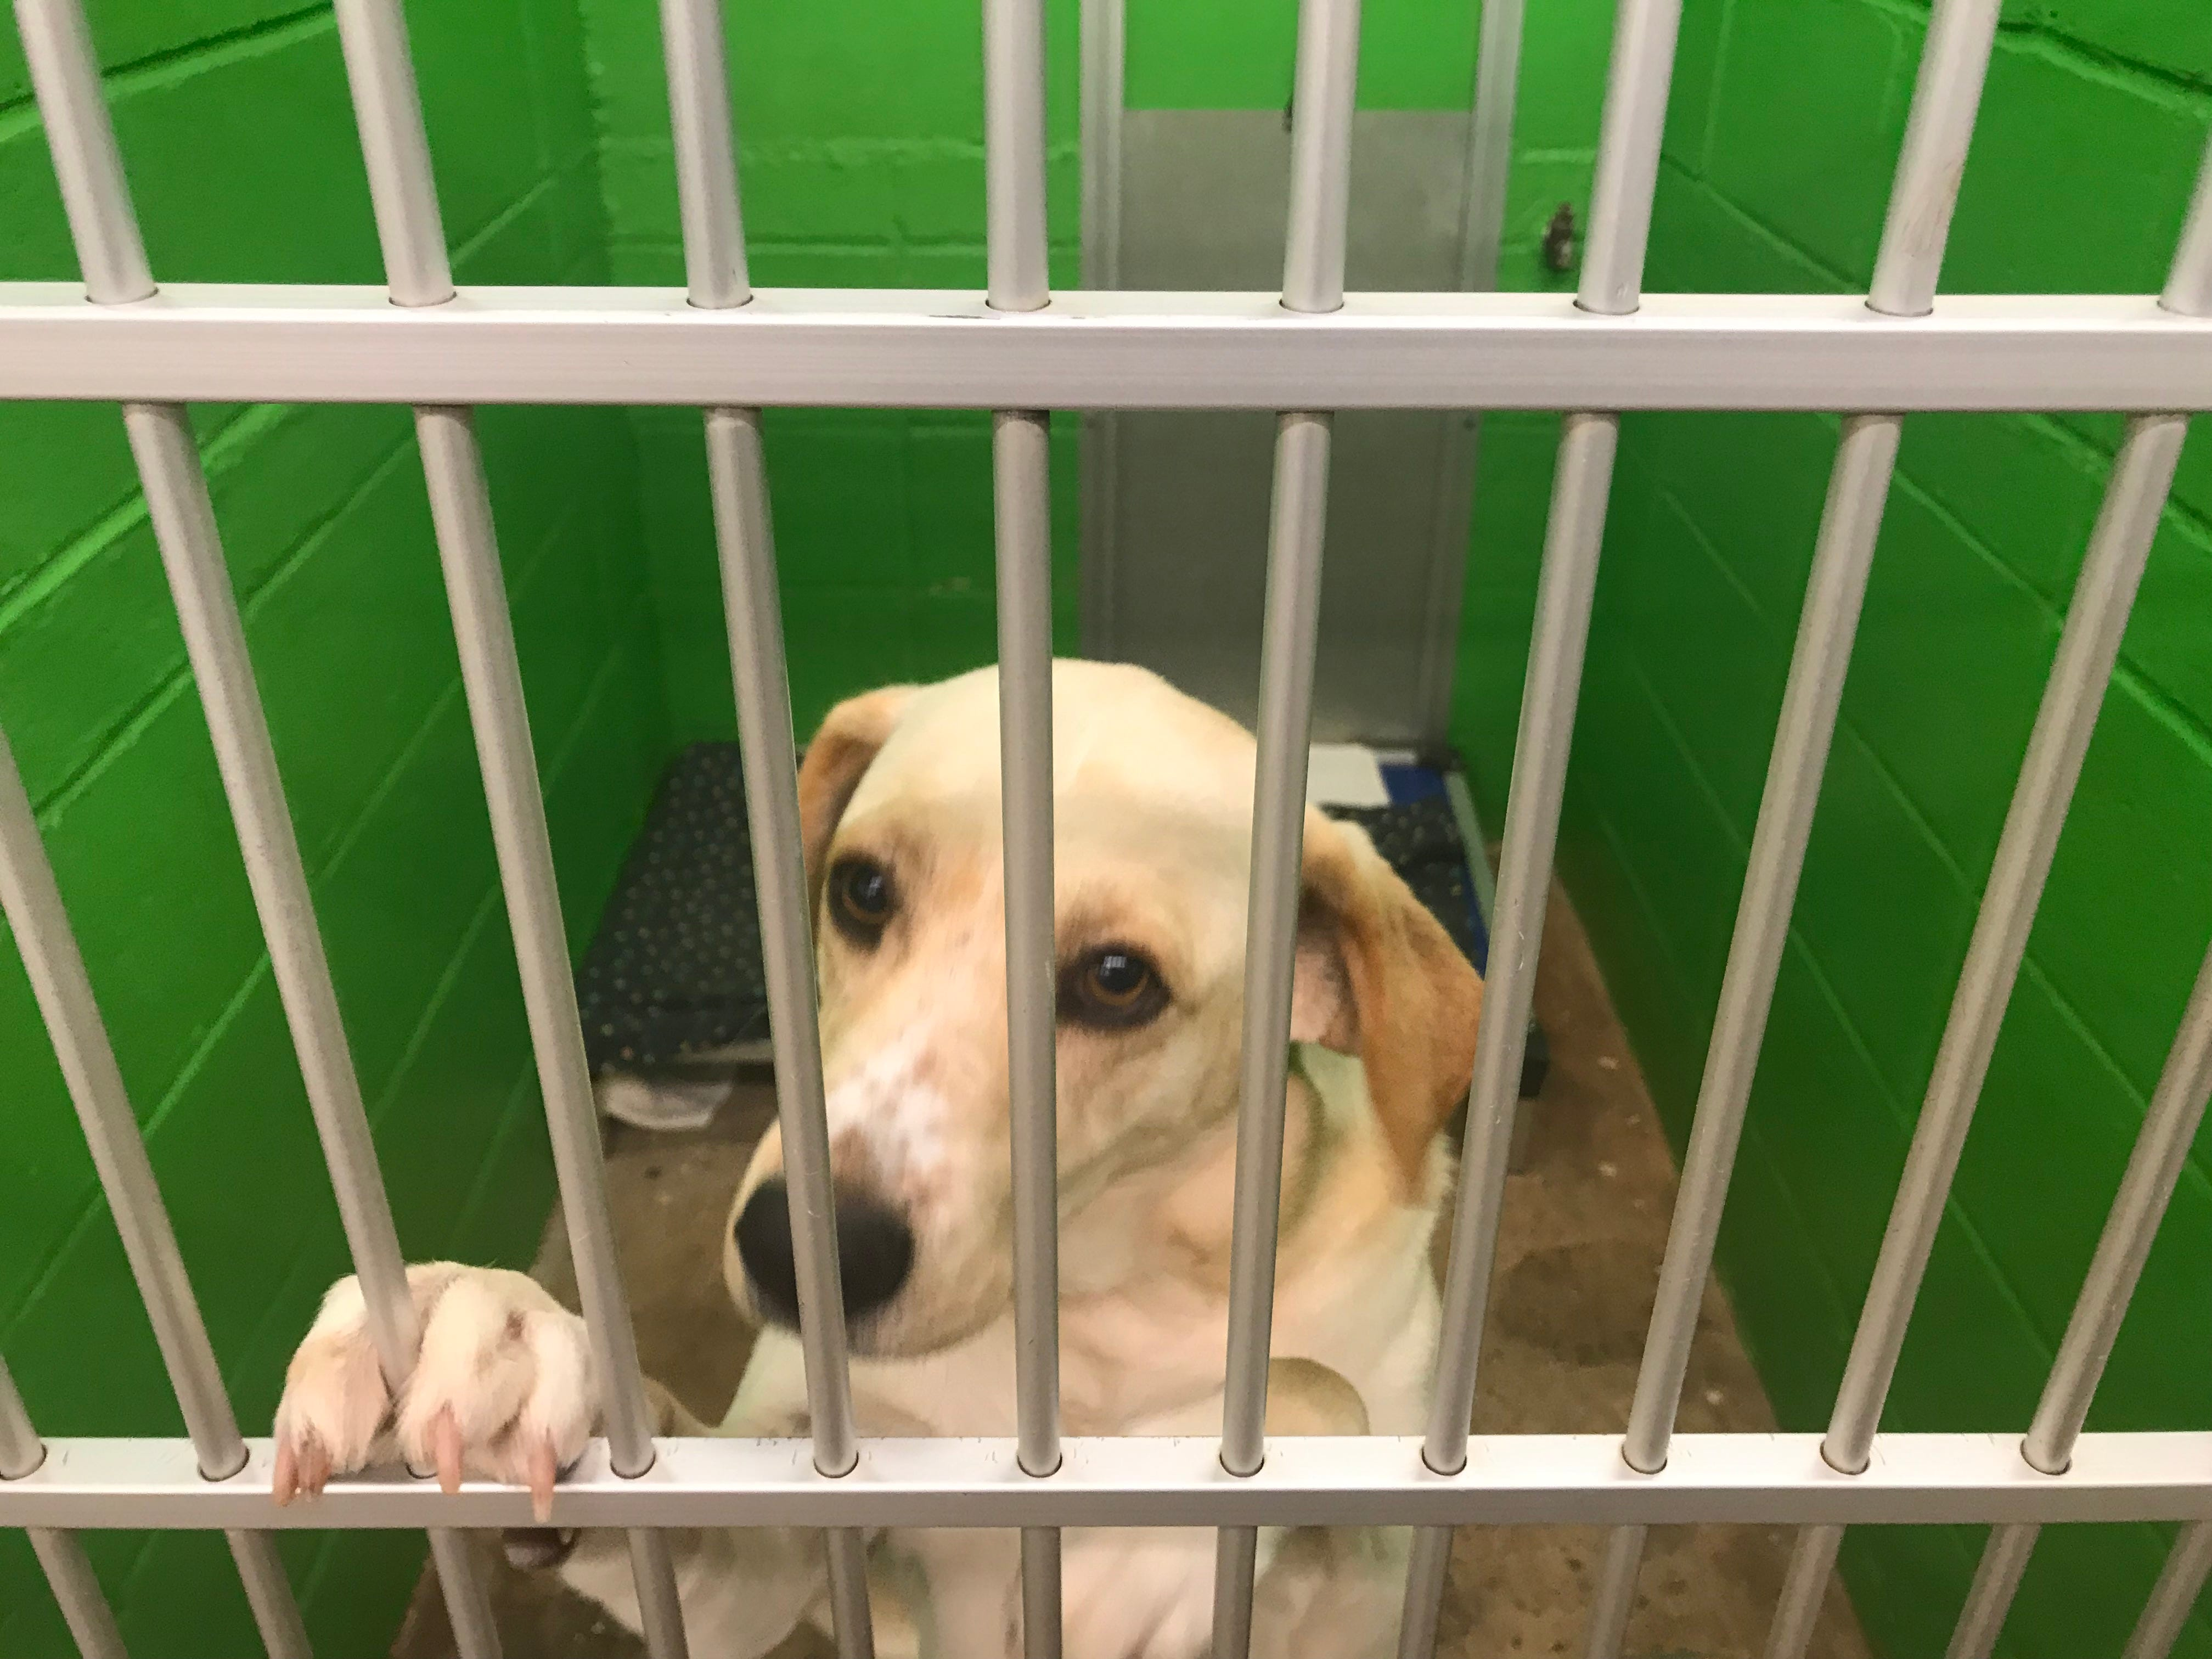 Marley, a female lab mix, is available for adoption with the fee already paid by columnist Ron Barnett.